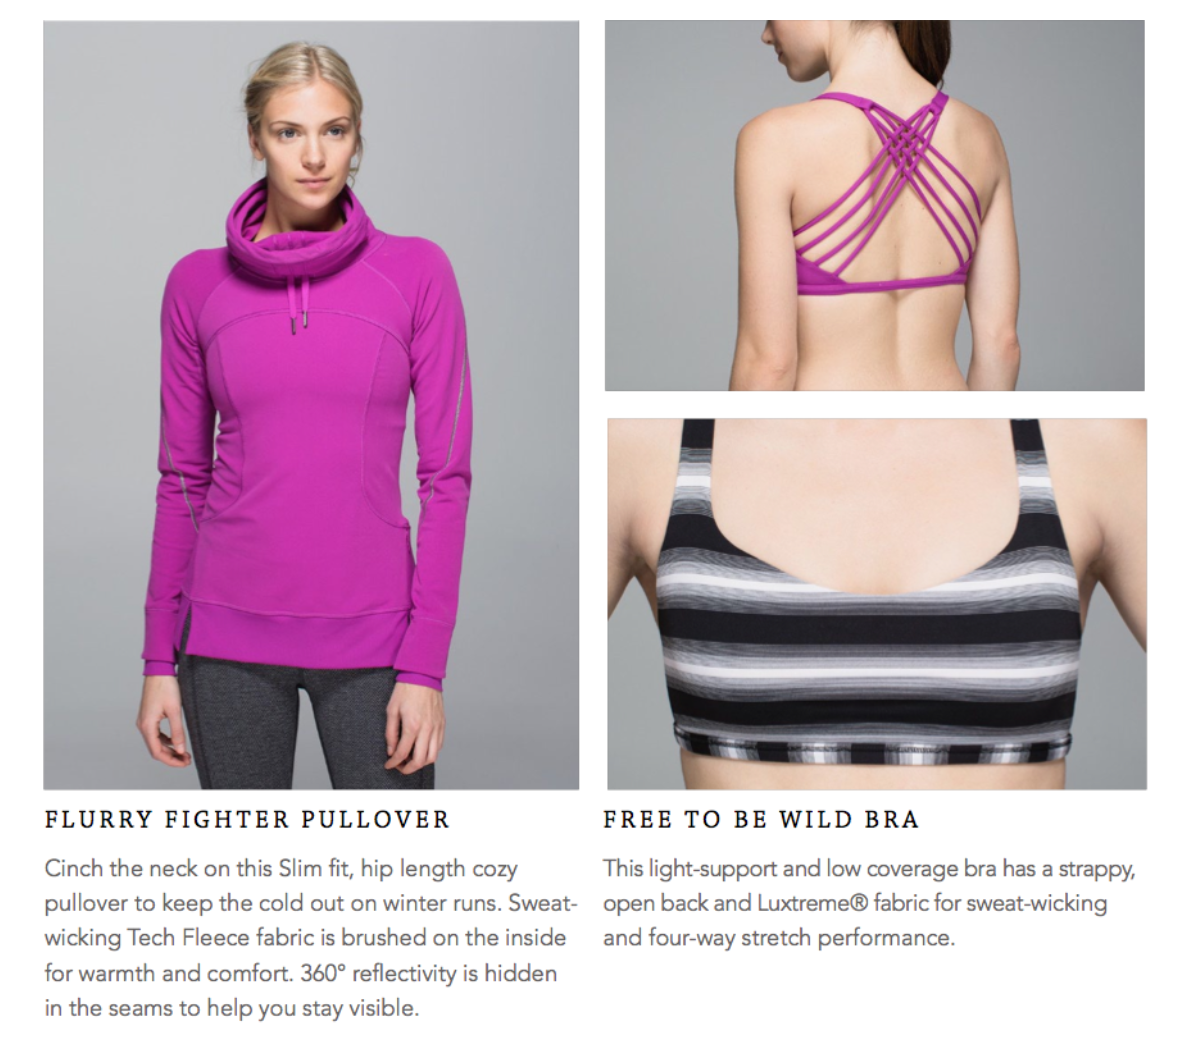 lululemon flurry fighter pullover